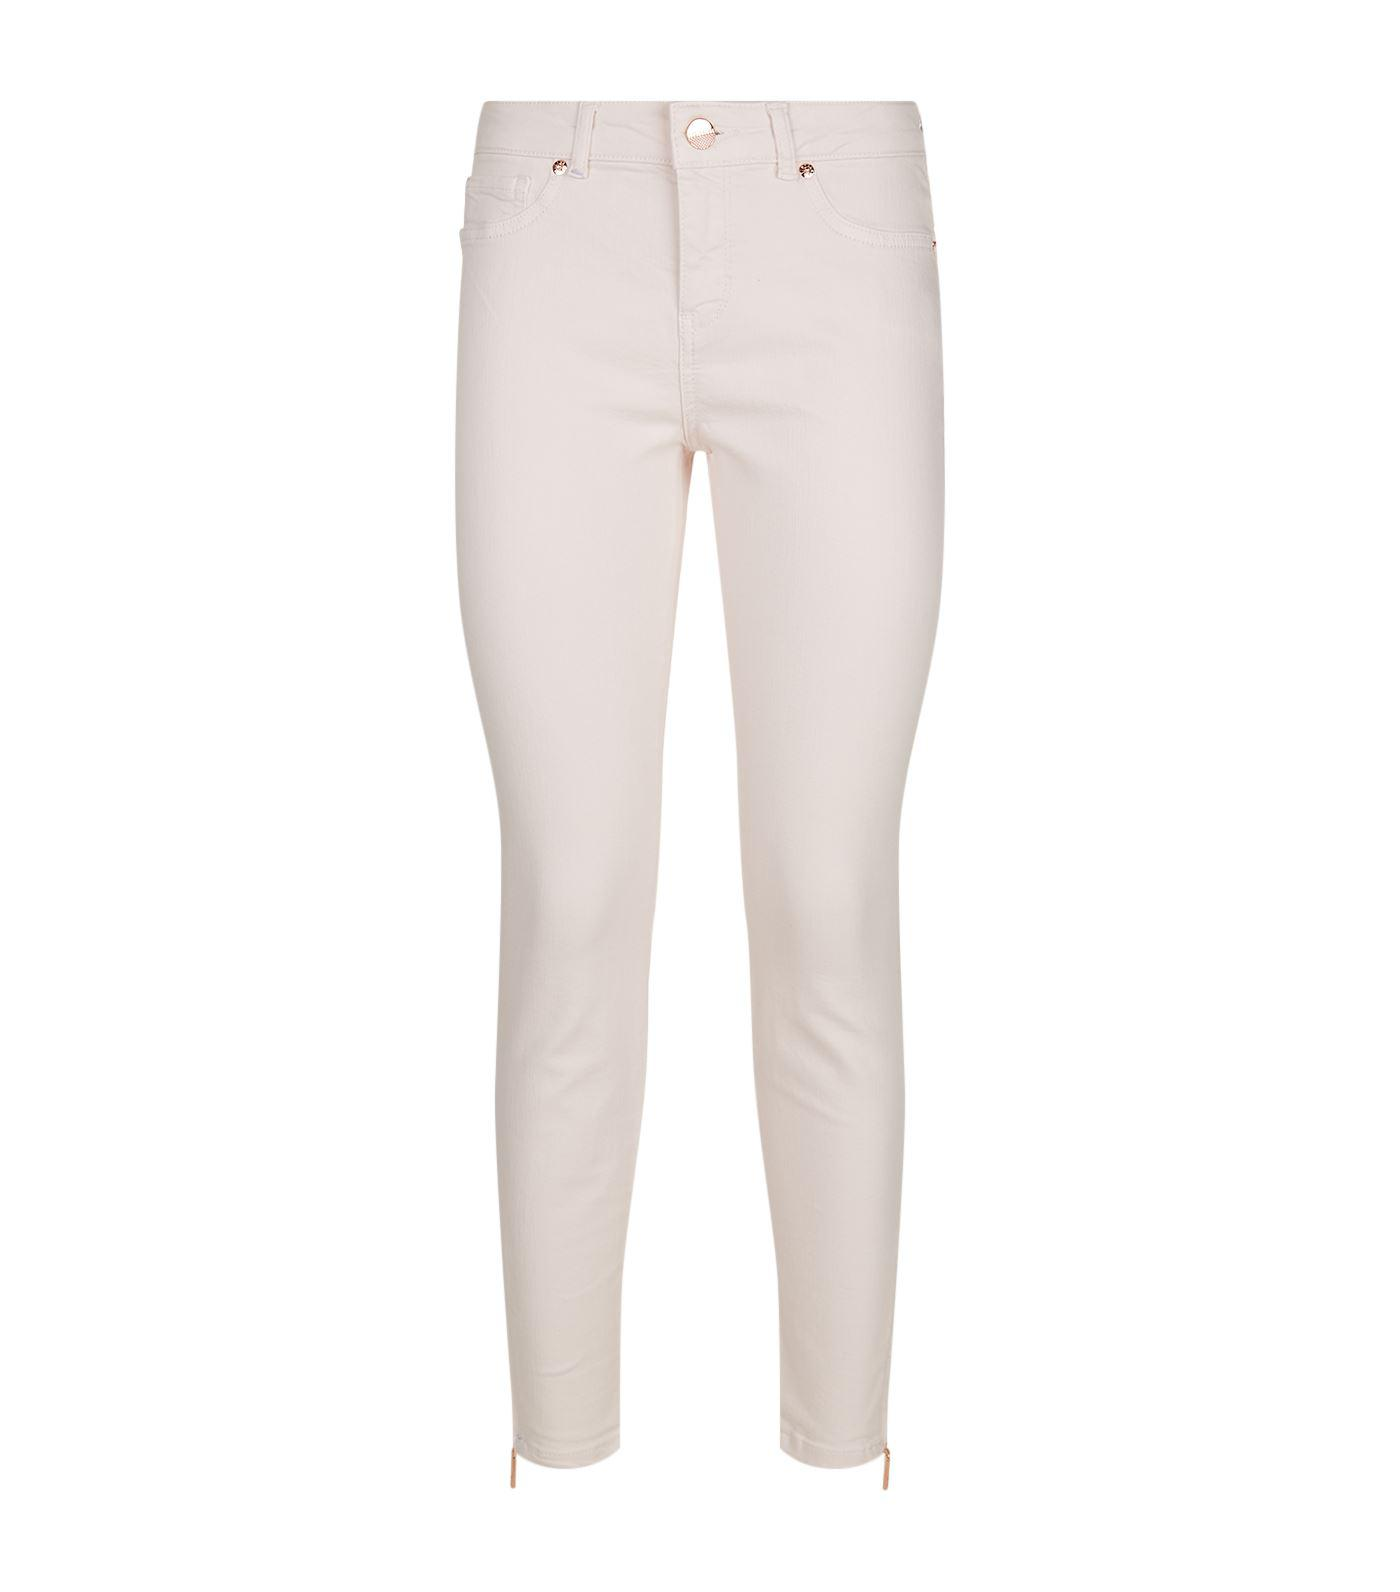 0750e028c1dac Gallery. Previously sold at  Harrods · Women s Pink Skinny Jeans ...